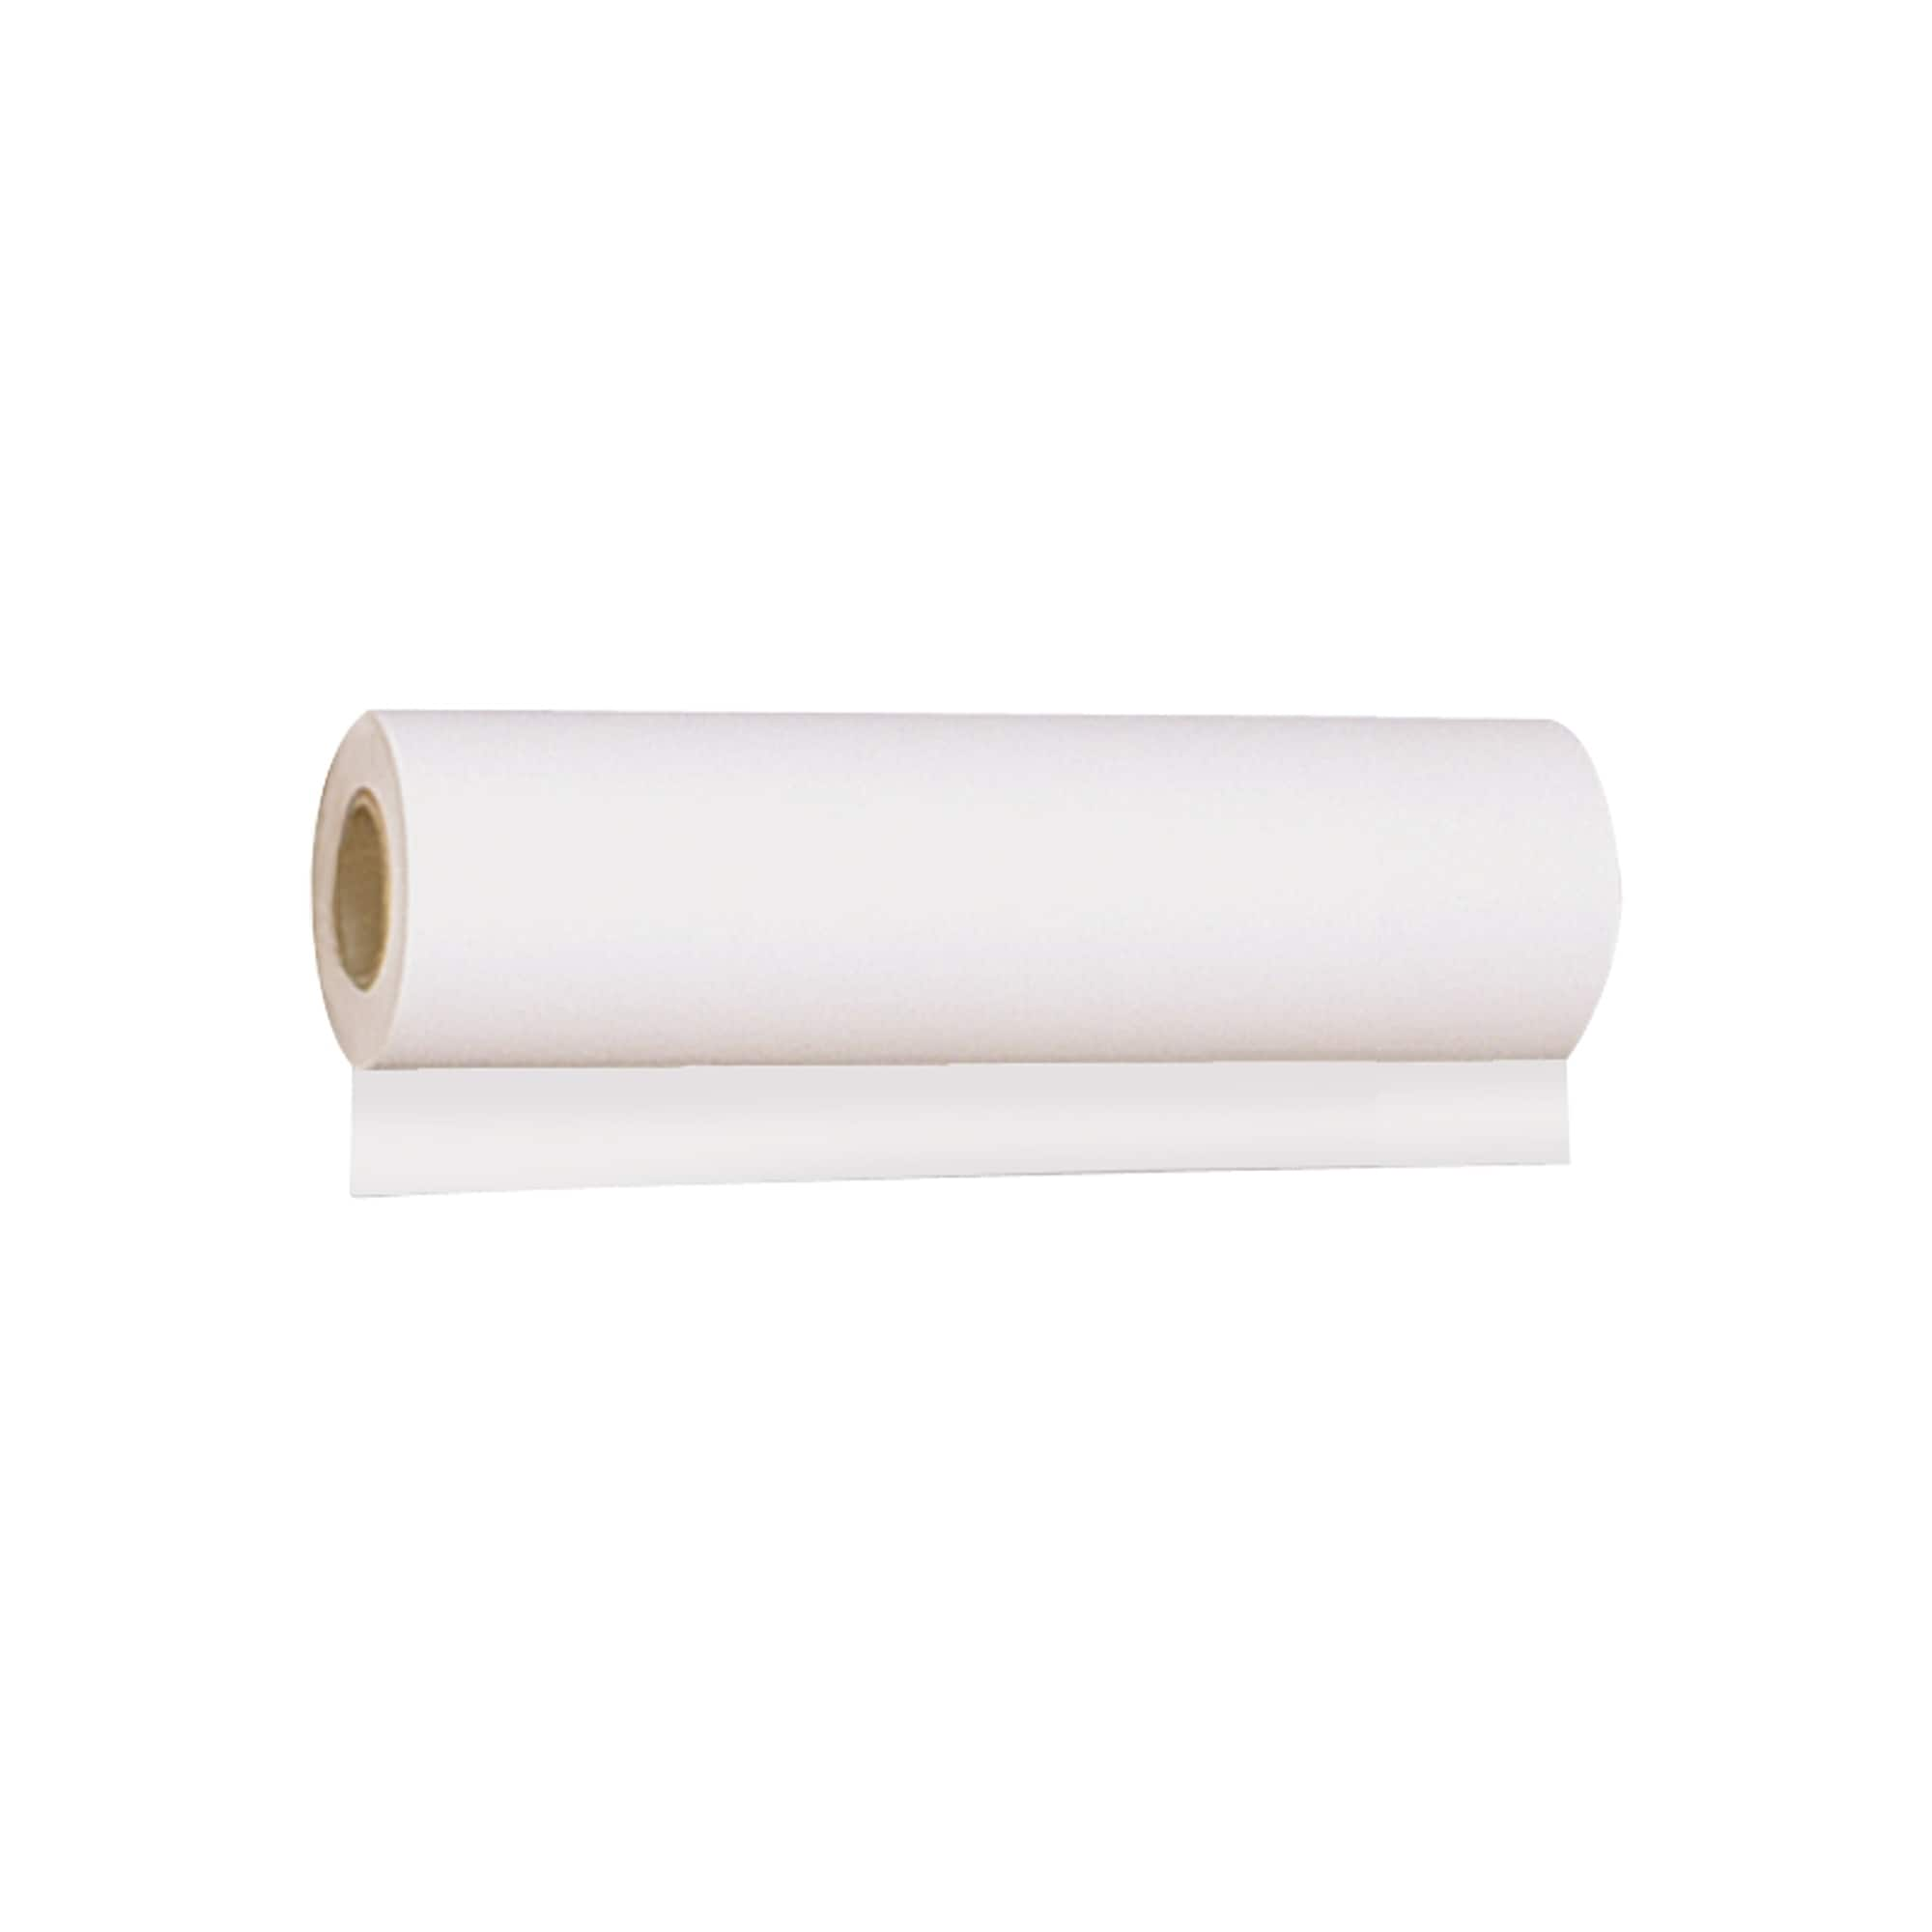 Guidecraft 15-inch Replacement Paper Roll (Repl Paper Rol...